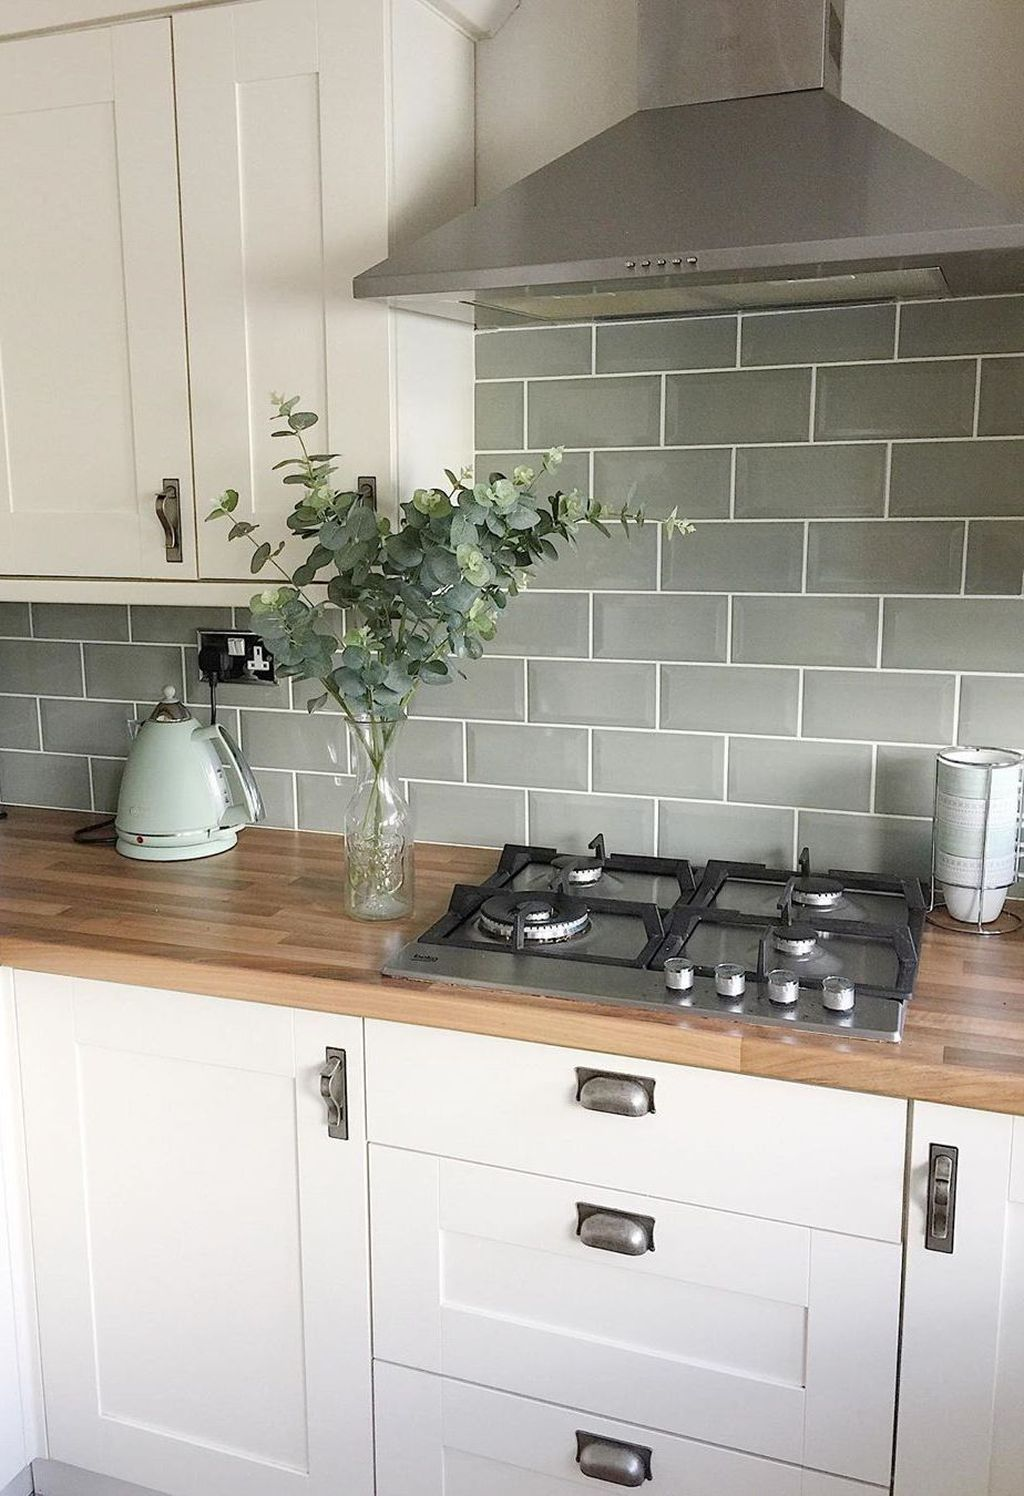 33 Awesome Backsplash Kitchen Wall Ideas That Every People Want It Kitchen Wall Tiles Design Kitchen Remodel Small Green Kitchen Backsplash